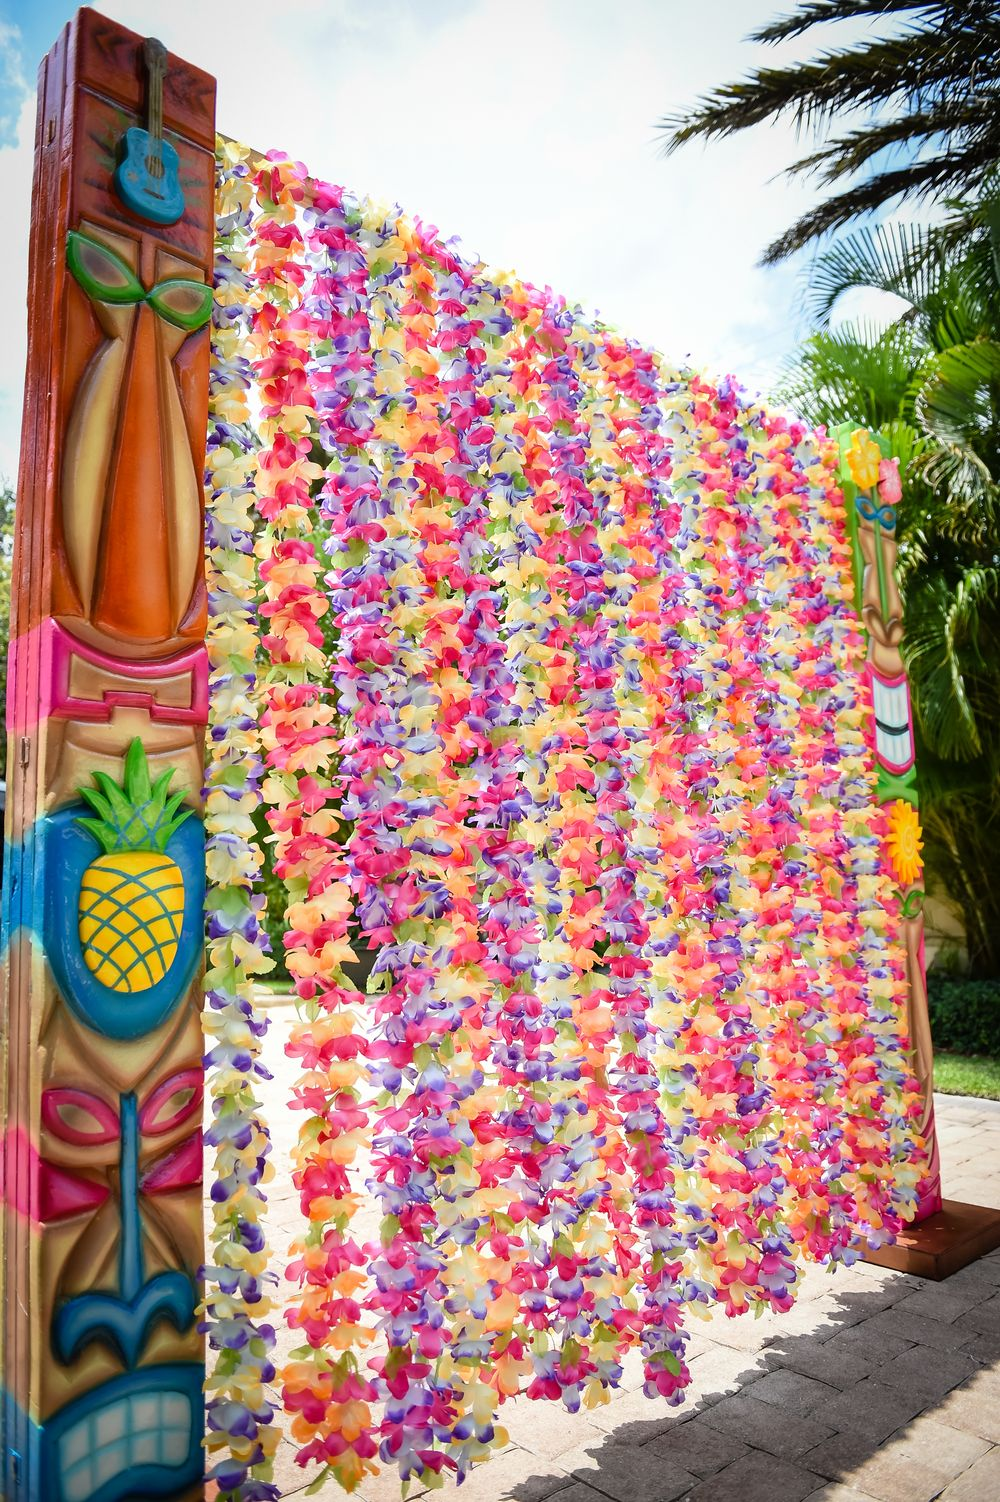 Hawaiian Theme Party Decoration Ideas Part - 37: Luau Party Entrance Made Of Leis Or A Great Pool Party Photo Backdrop.